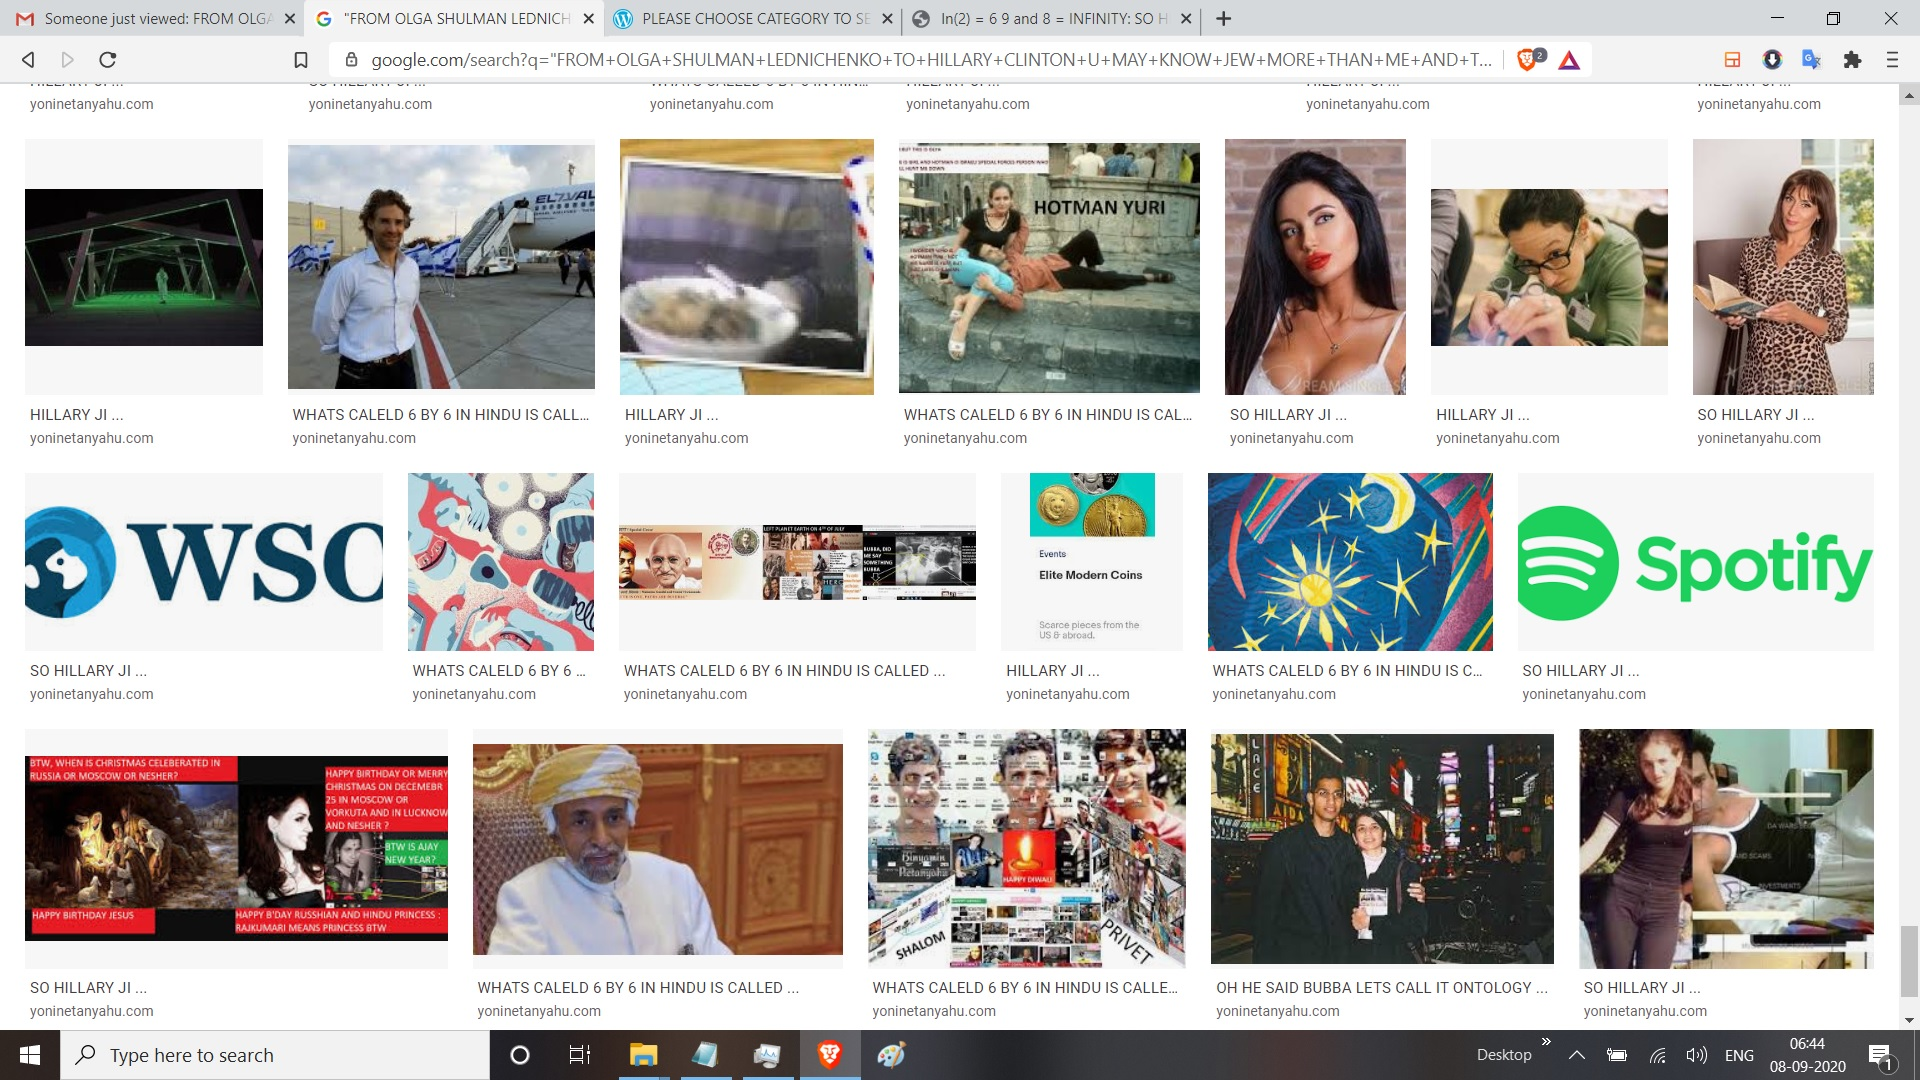 FROM OLGA SHULMAN LEDNICHENKO TO HILLARY CLINTON U MAY KNOW JEW MORE THAN ME AND THAT NO ONE CAN DOUBT BUT DOE OBAMA FAMILY AND MODI AND BOLLYWOOD KNOW INDIA AND ISAREL MORE THAN ME IF I OWN AJAY